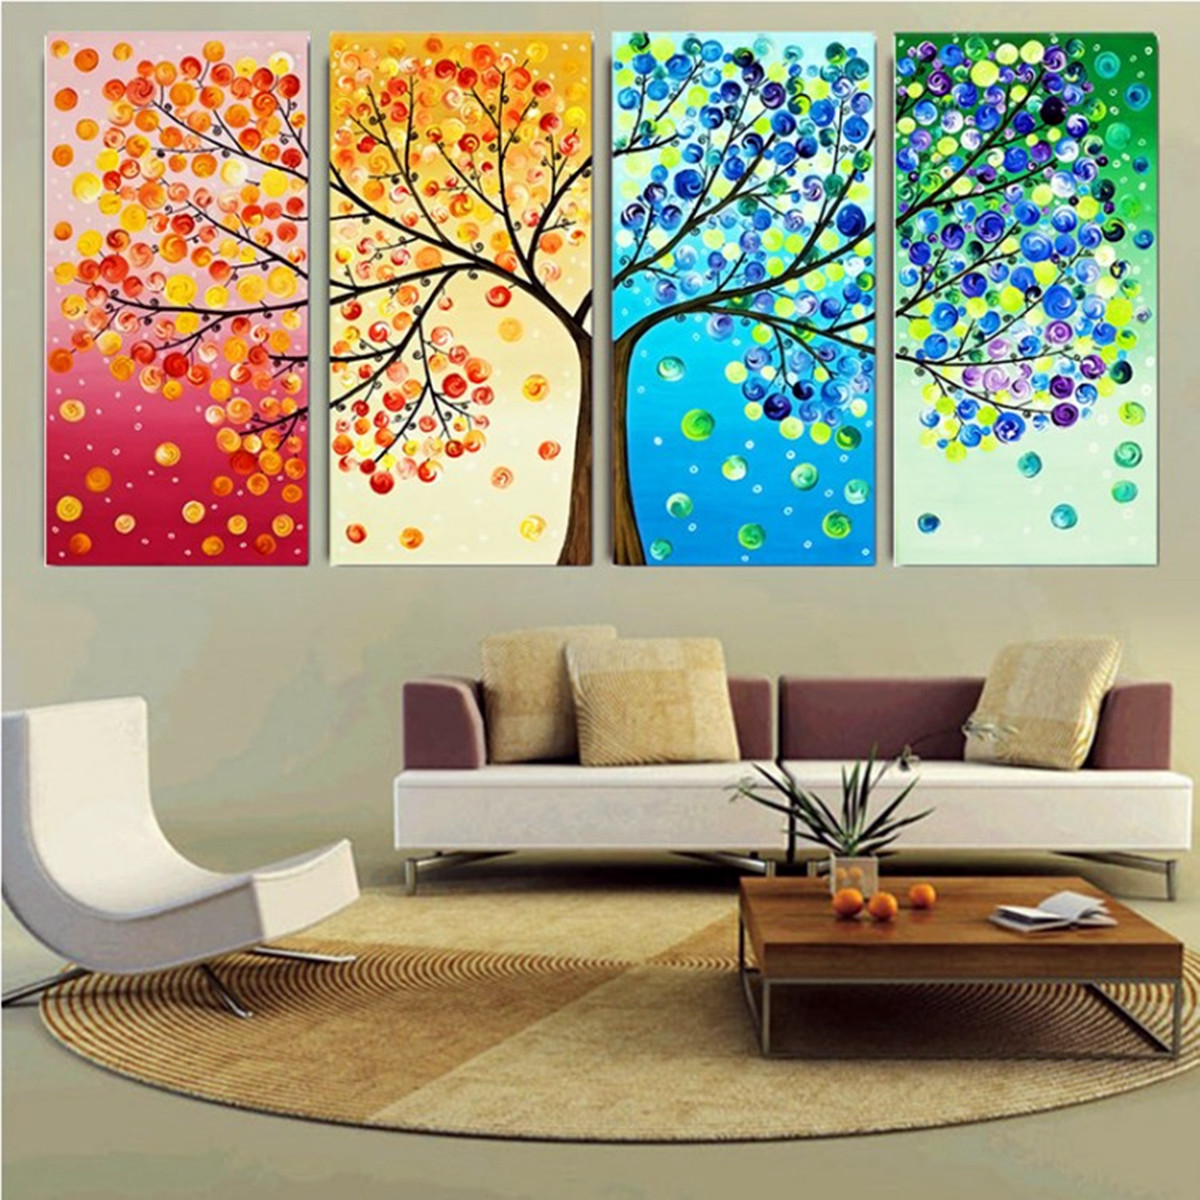 Diy handmade colorful season tree counted cross stitch for Home decoration design